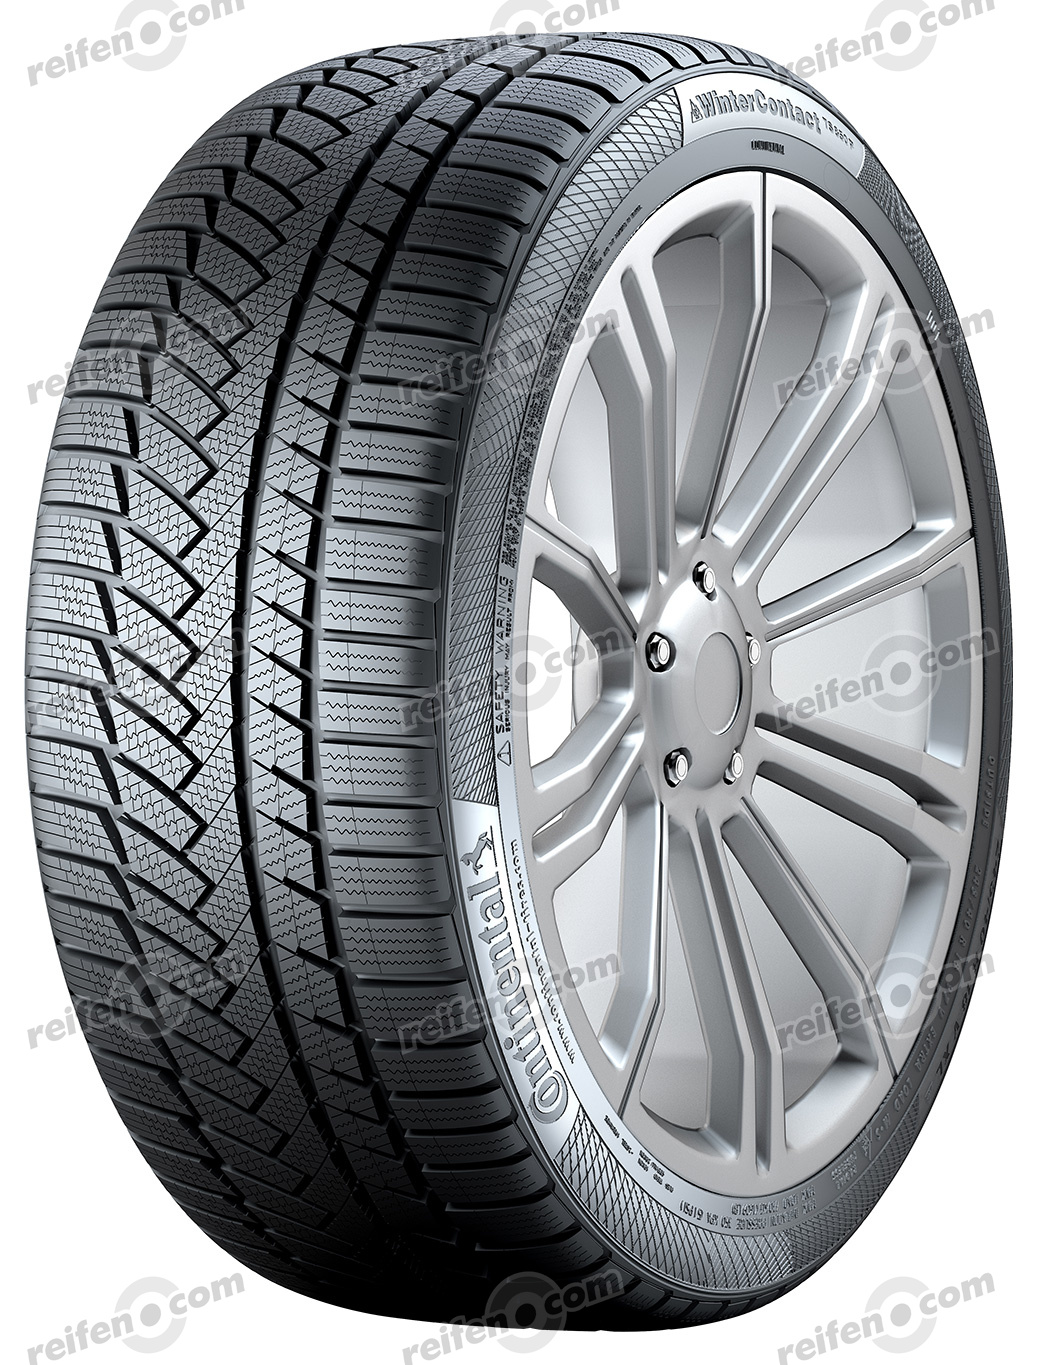 235/45 R17 94H WinterContact TS 850 P ContiSeal FR  WinterContact TS 850 P ContiSeal FR